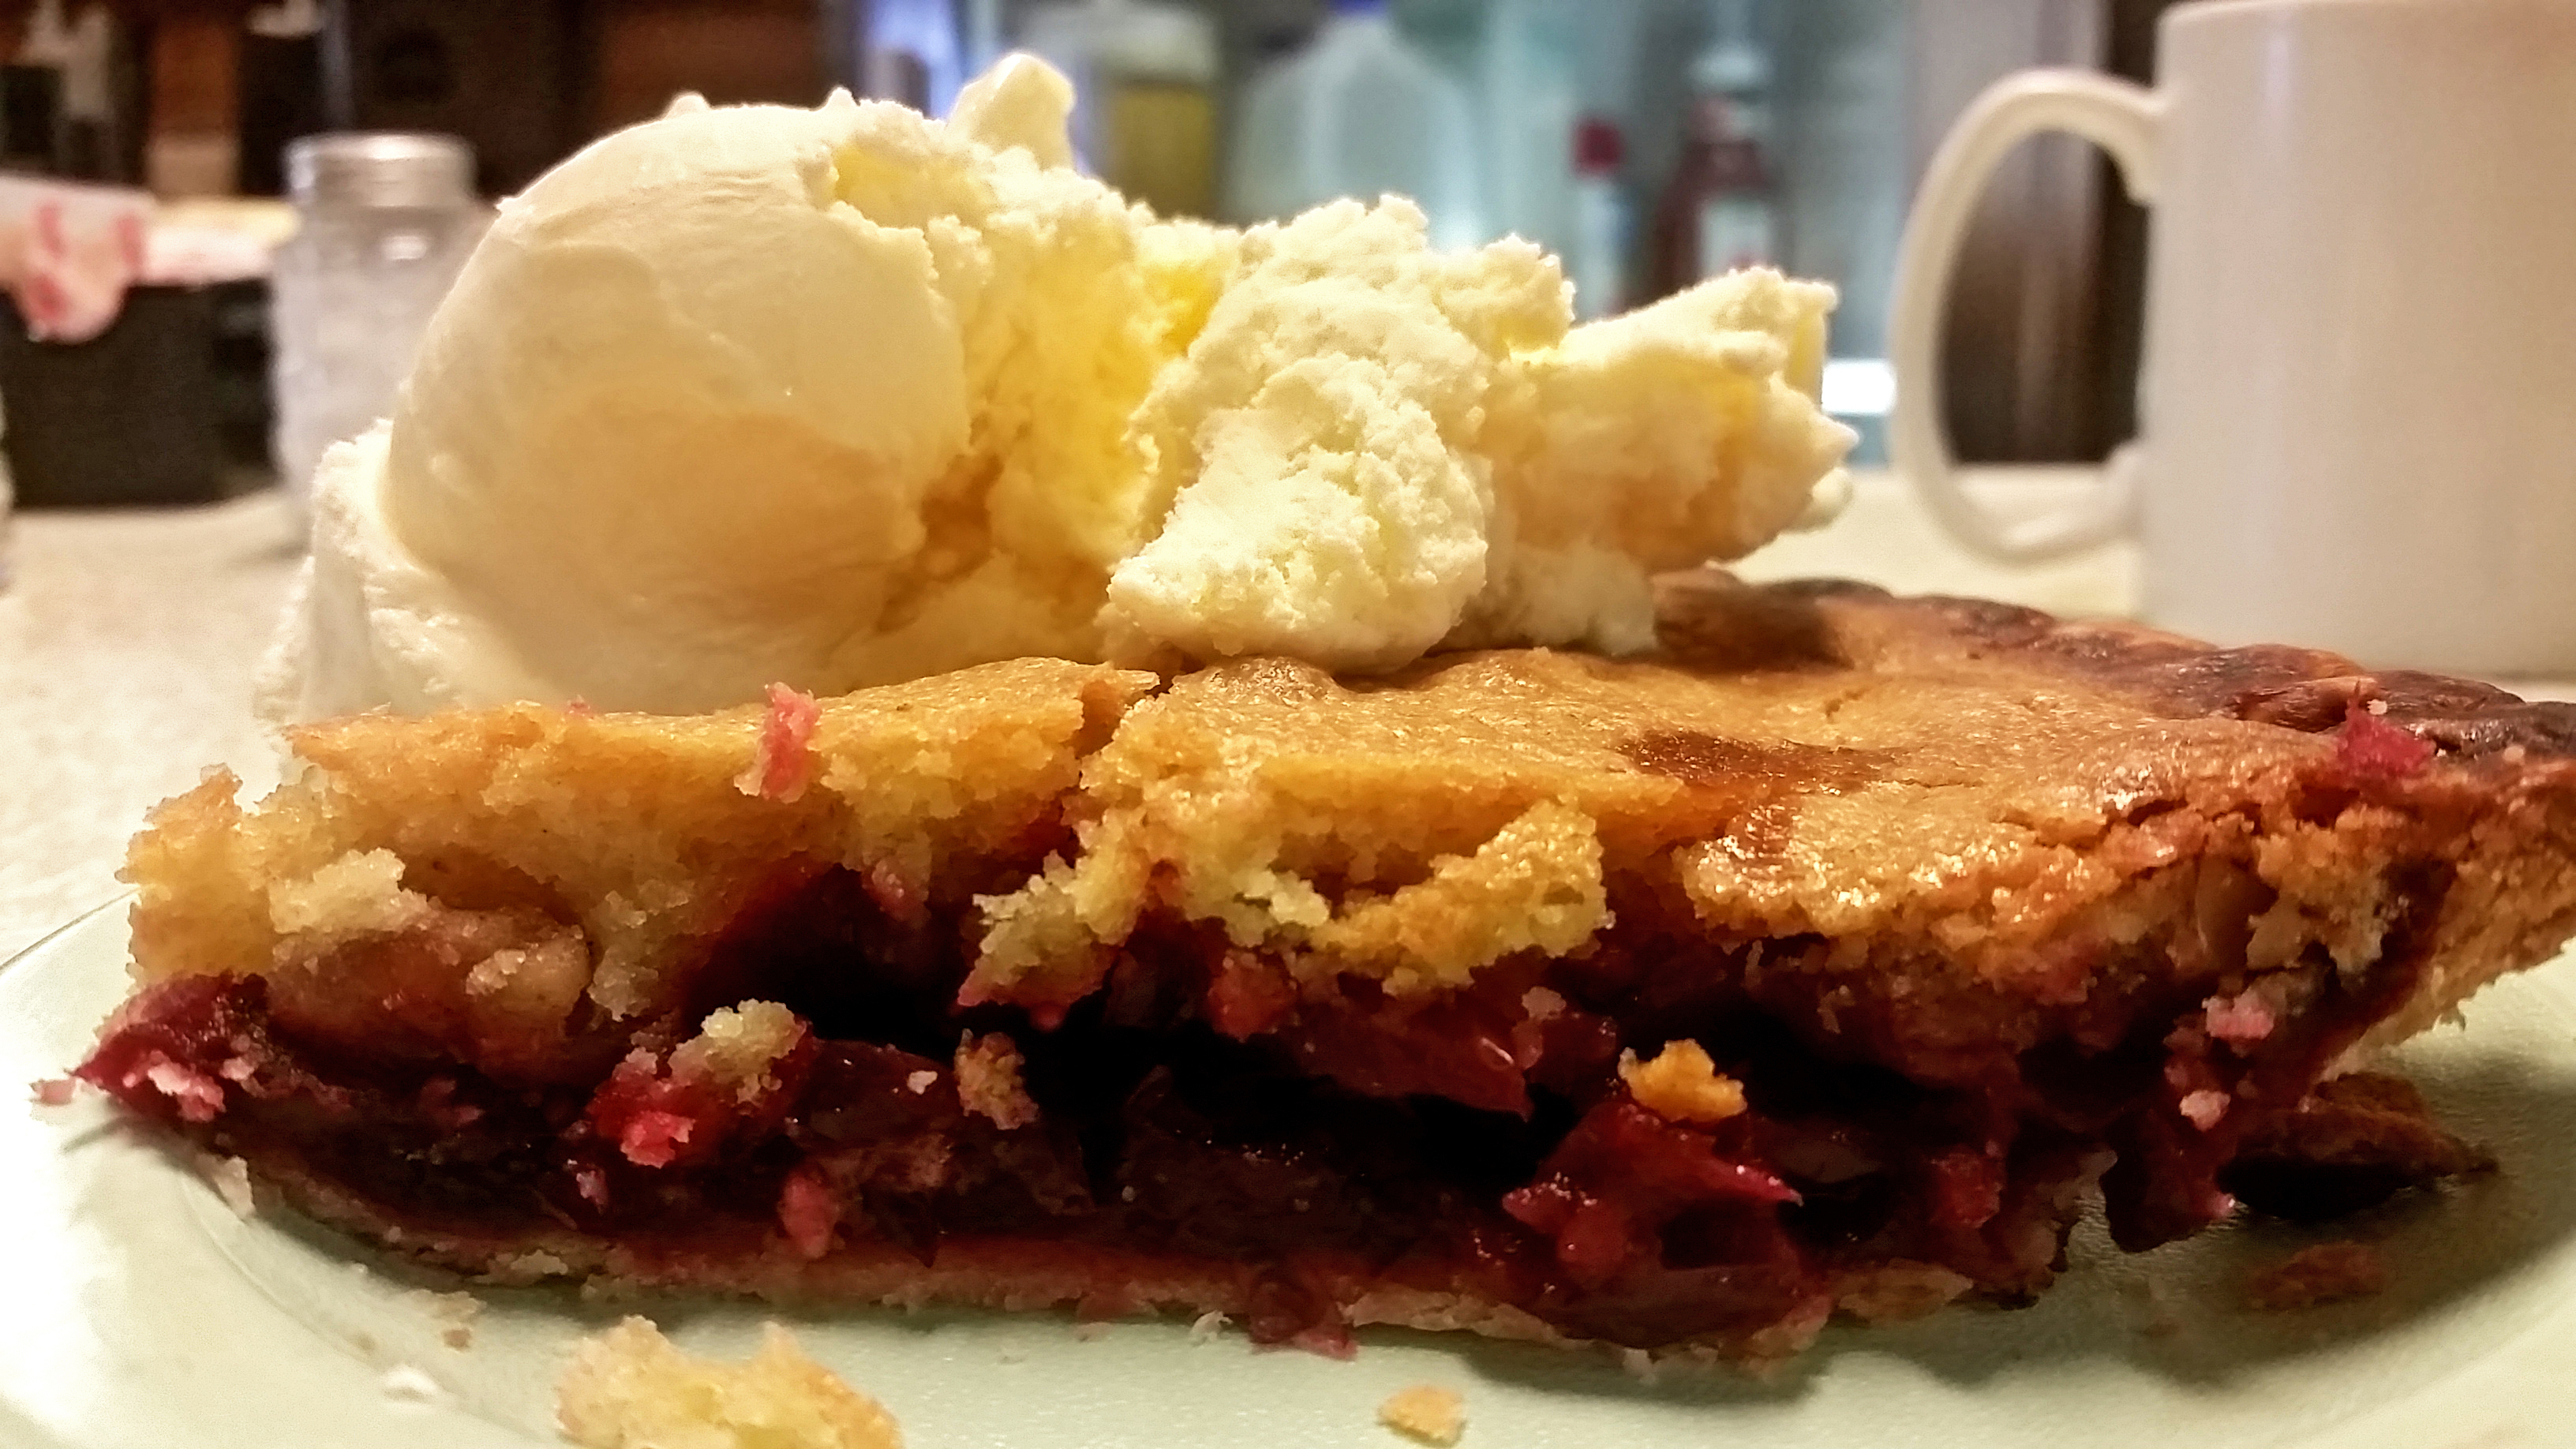 travel-wisconsin Babcock Cafe in Babcock, Wisconsin, serves a variety of cranberry pies, including cranberry nut with ice cream, pictured here. MUST CREDIT: Photo by Kate Silver for The Washington Post.